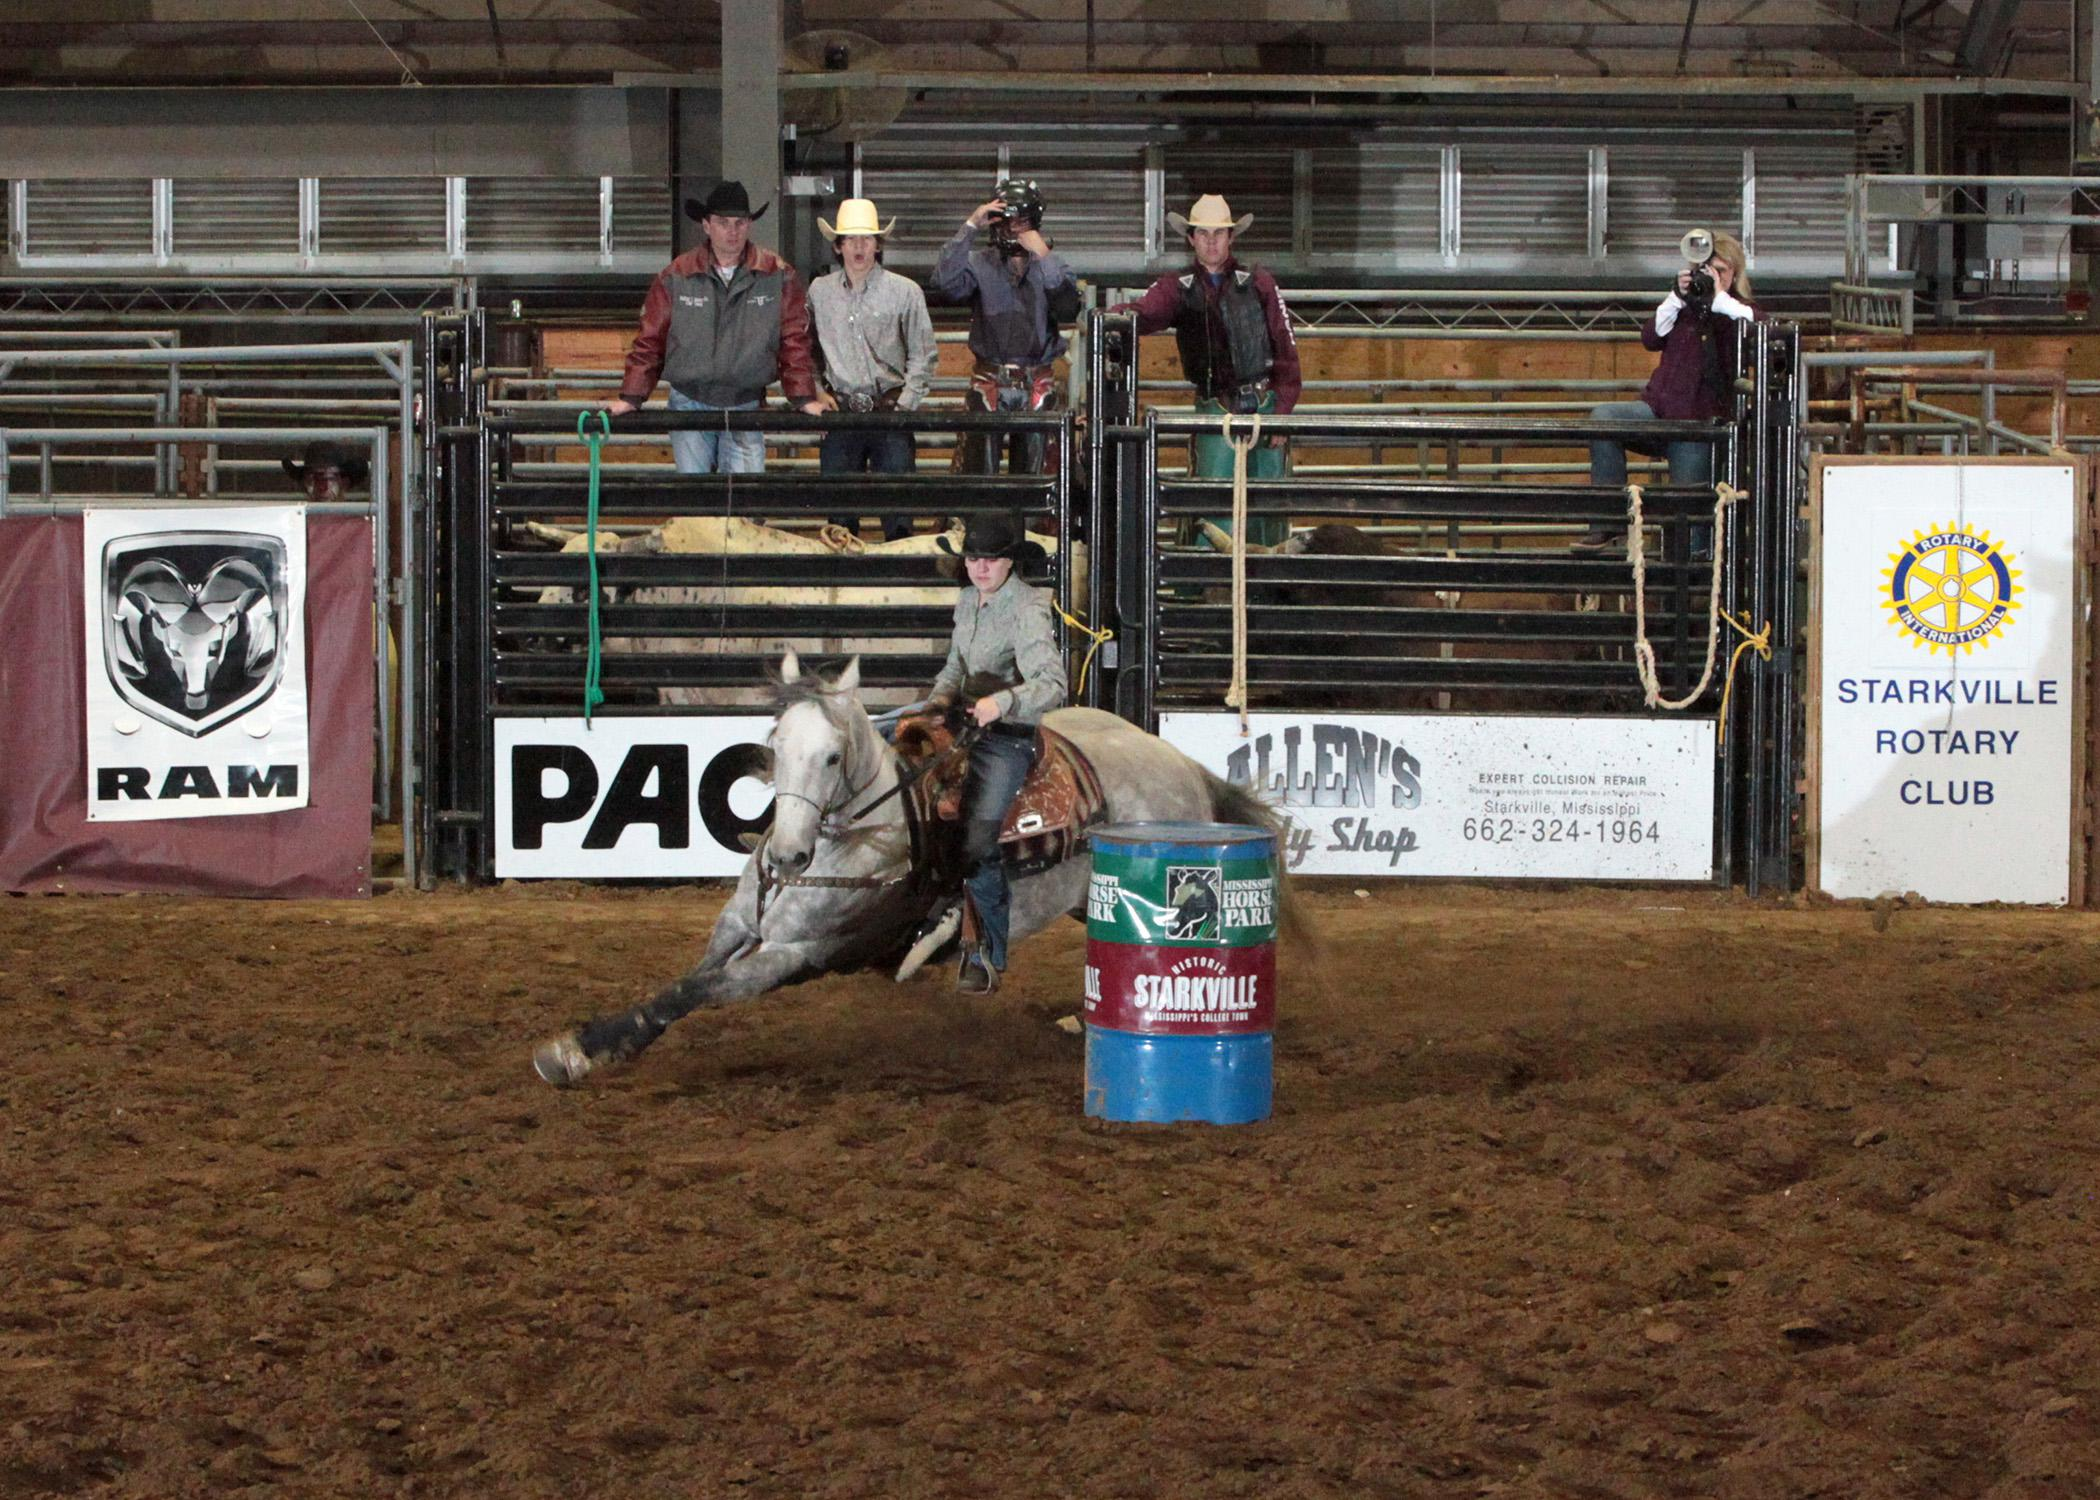 """Victoria Williams races around a barrel at the 2013 Rotary Classic Rodeo, held in February at the Mississippi Horse Park. The Mississippi State University facility near Starkville, Miss., recently earned a """"best footing"""" award from the Women's Professional Rodeo Association. (Submitted Photo)"""